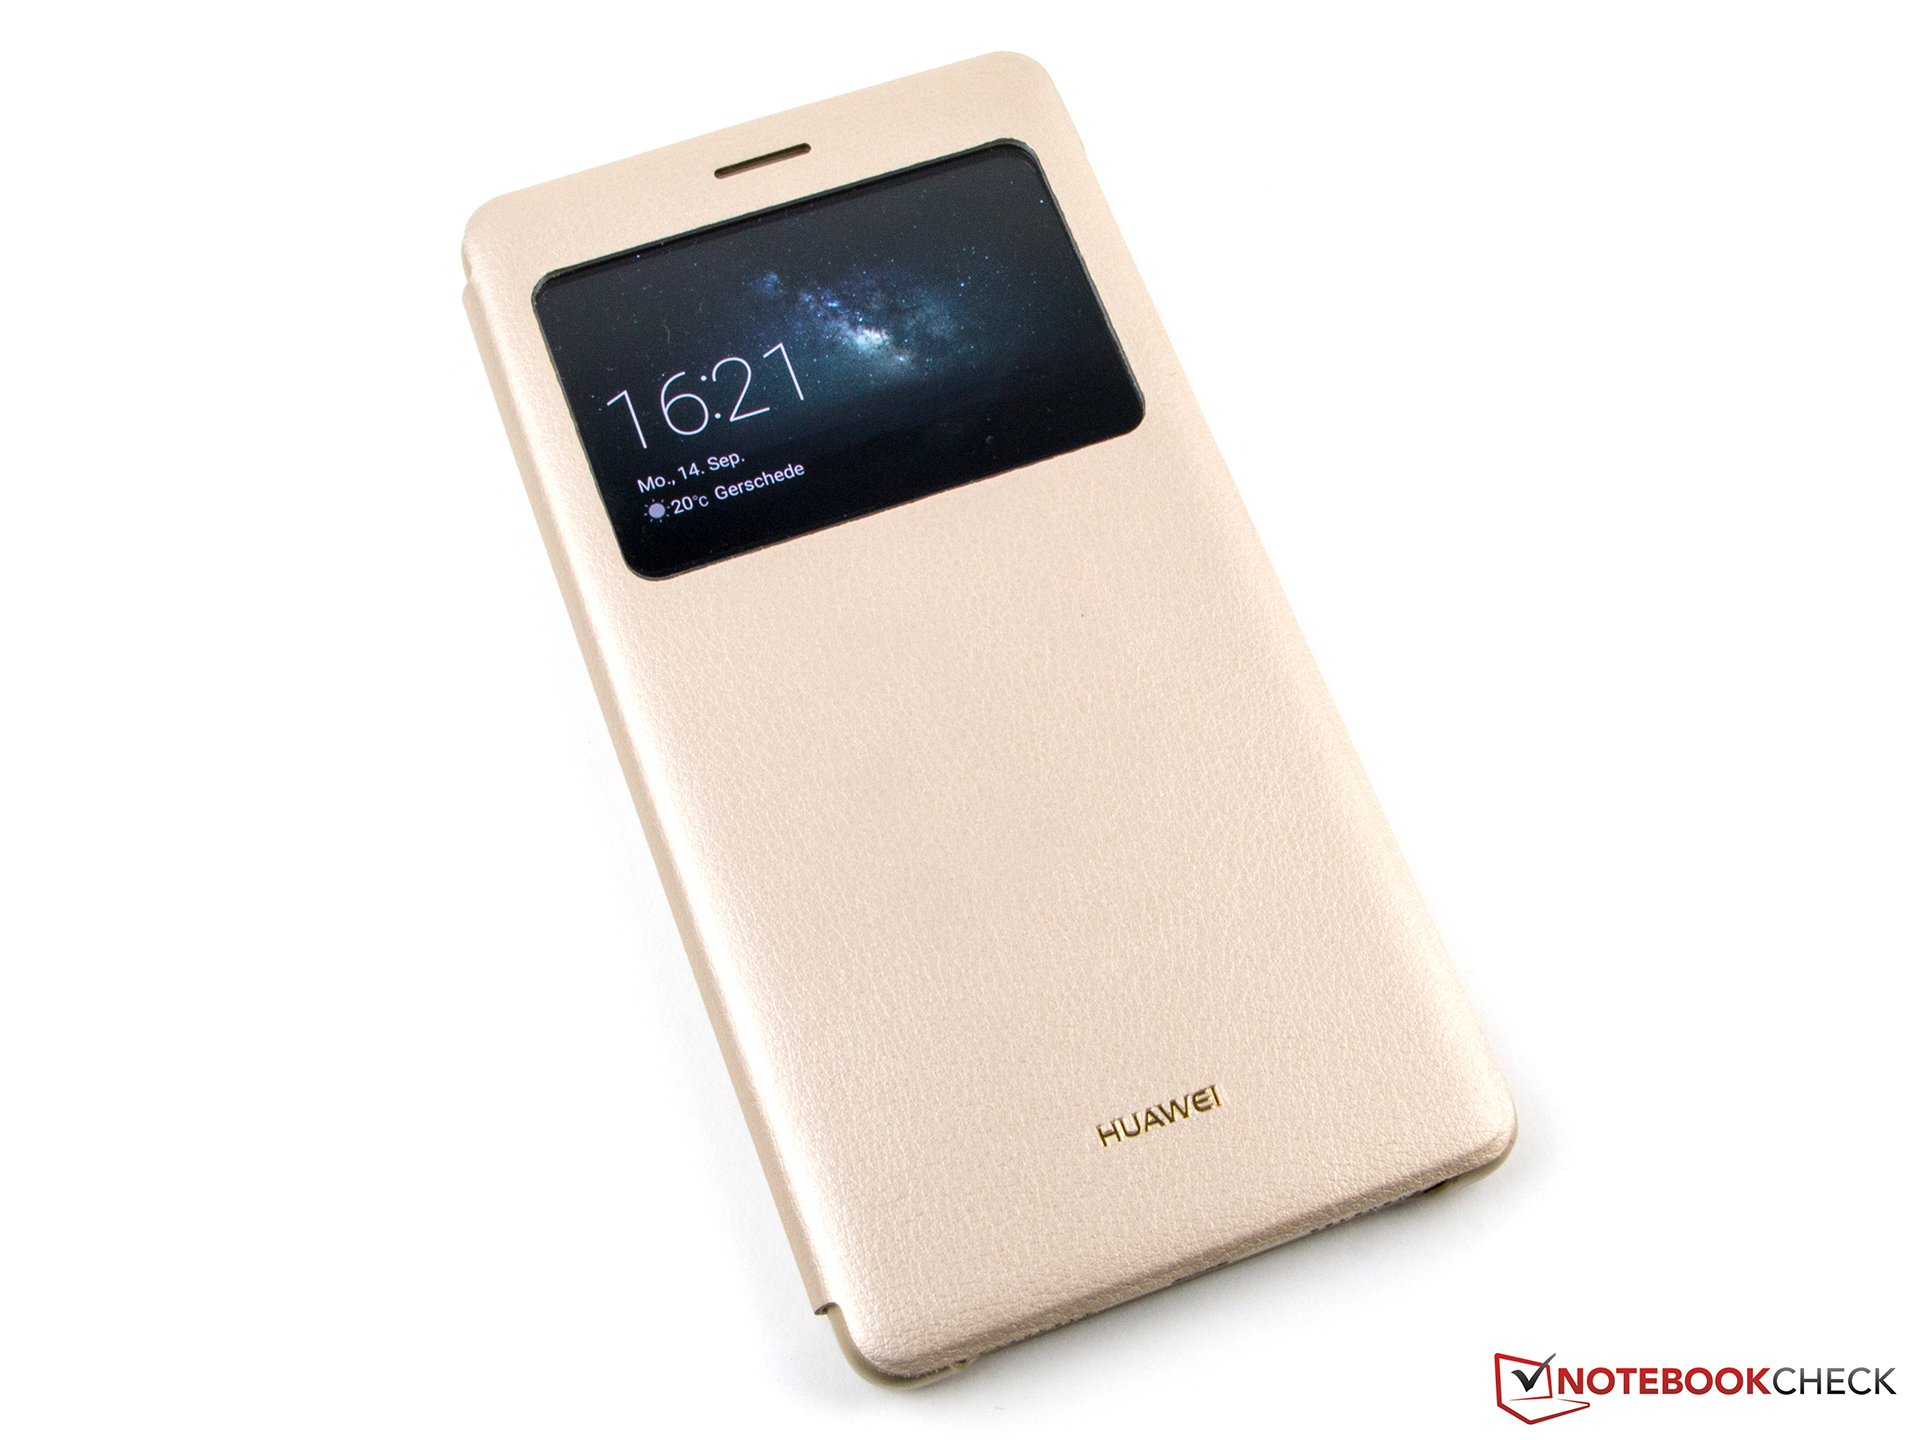 Original huawei mate s 5 5 inch emui 3 1 smart phone hisilicon kirin - Full Resolution